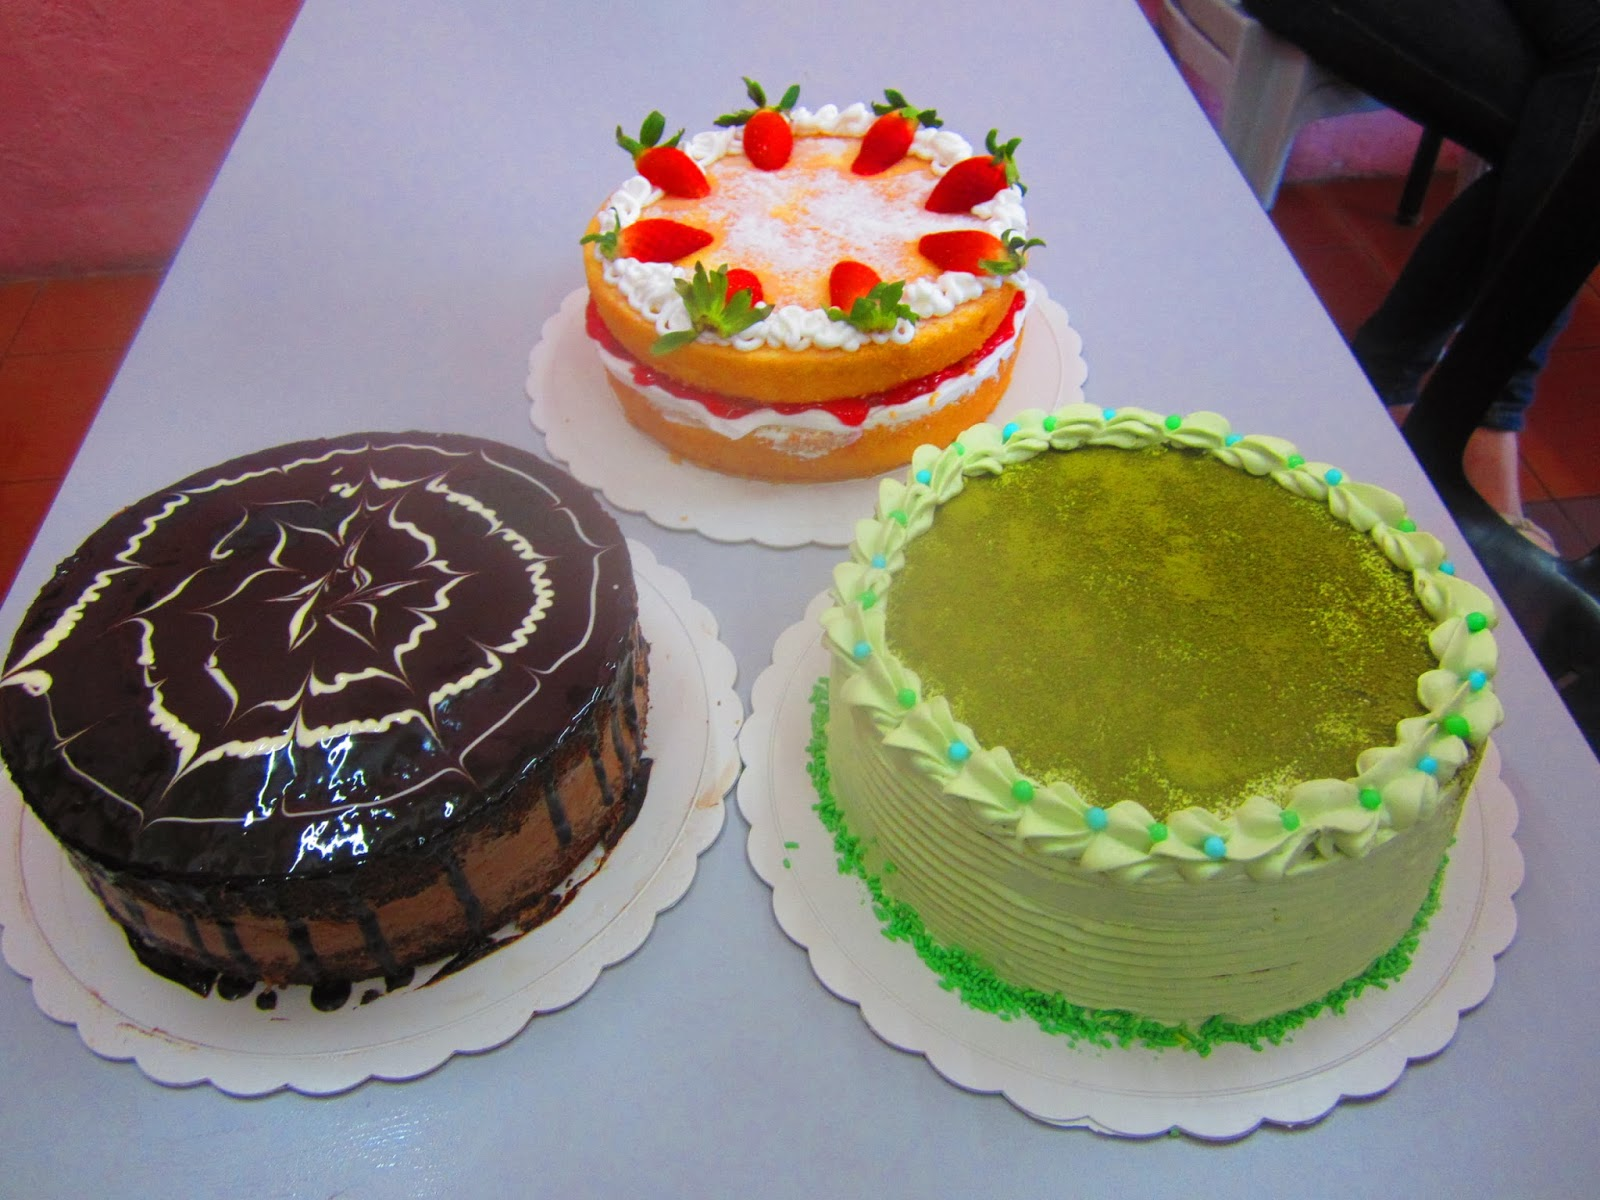 Pg cakecraft one recipe 3 types of cakes class on 14th for Different types of cakes recipes with pictures